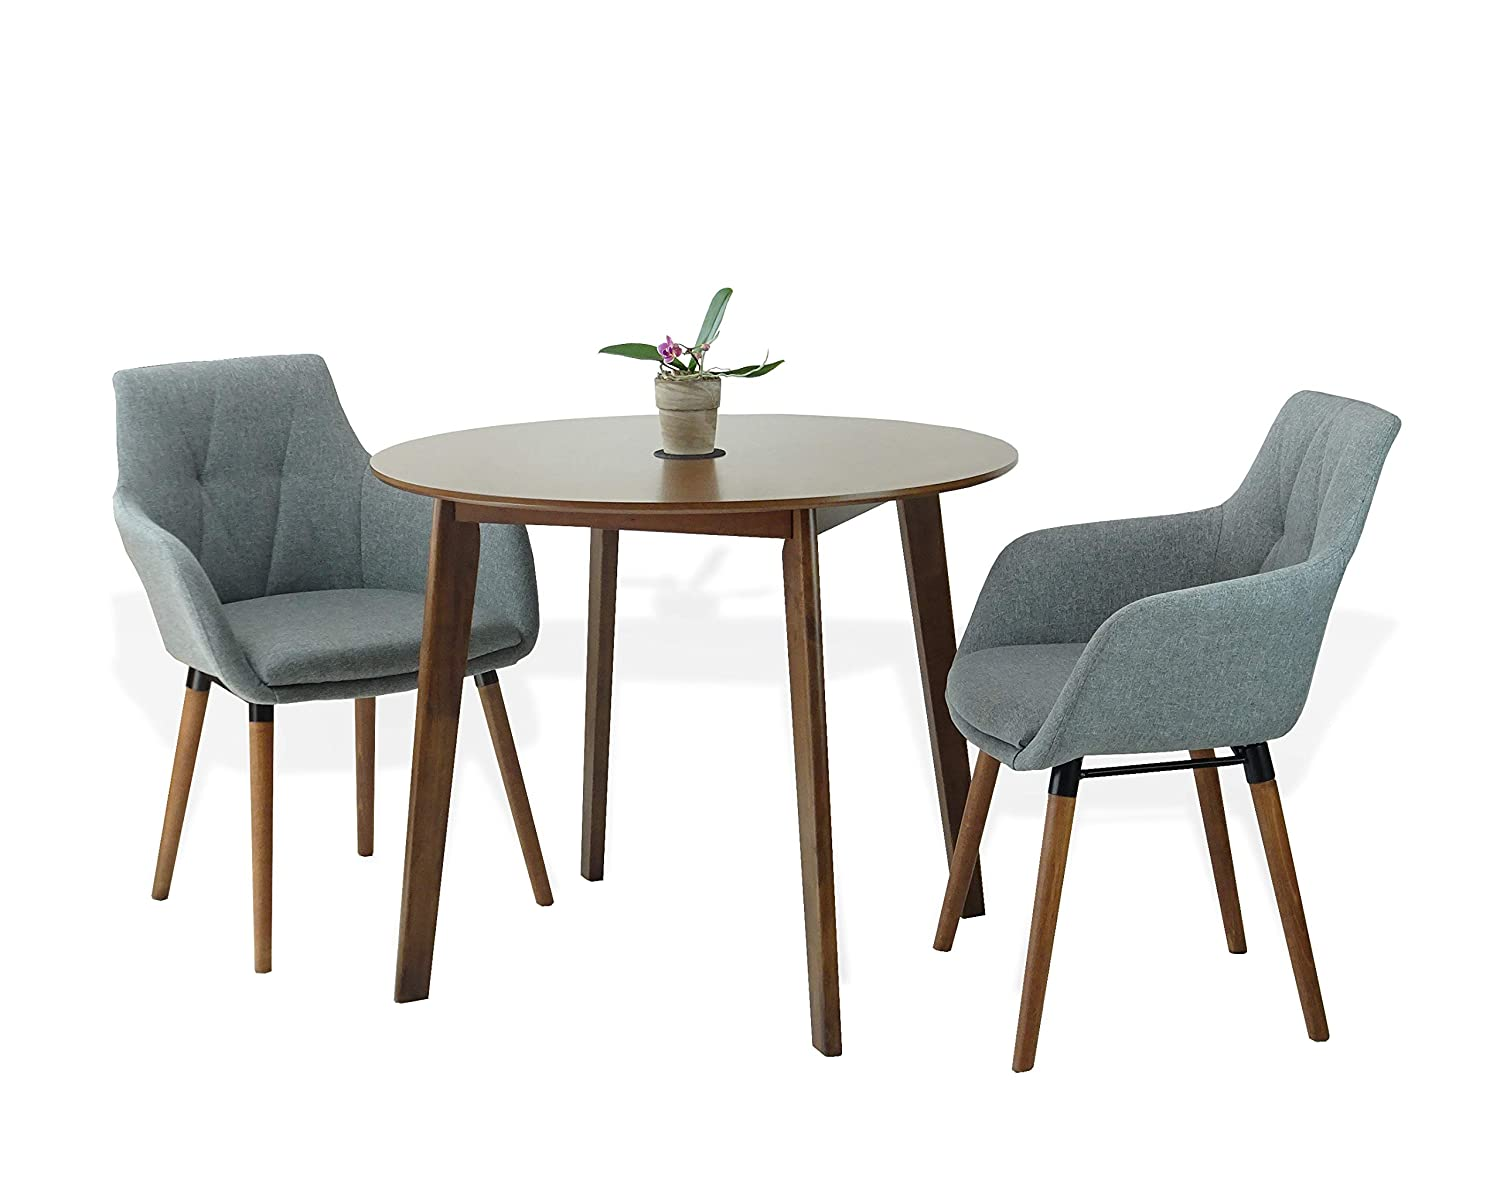 Amazon com sunbear furniture modern set of 3 dining round wooden medium brown table with 2 alba armchairs gray color table chair sets